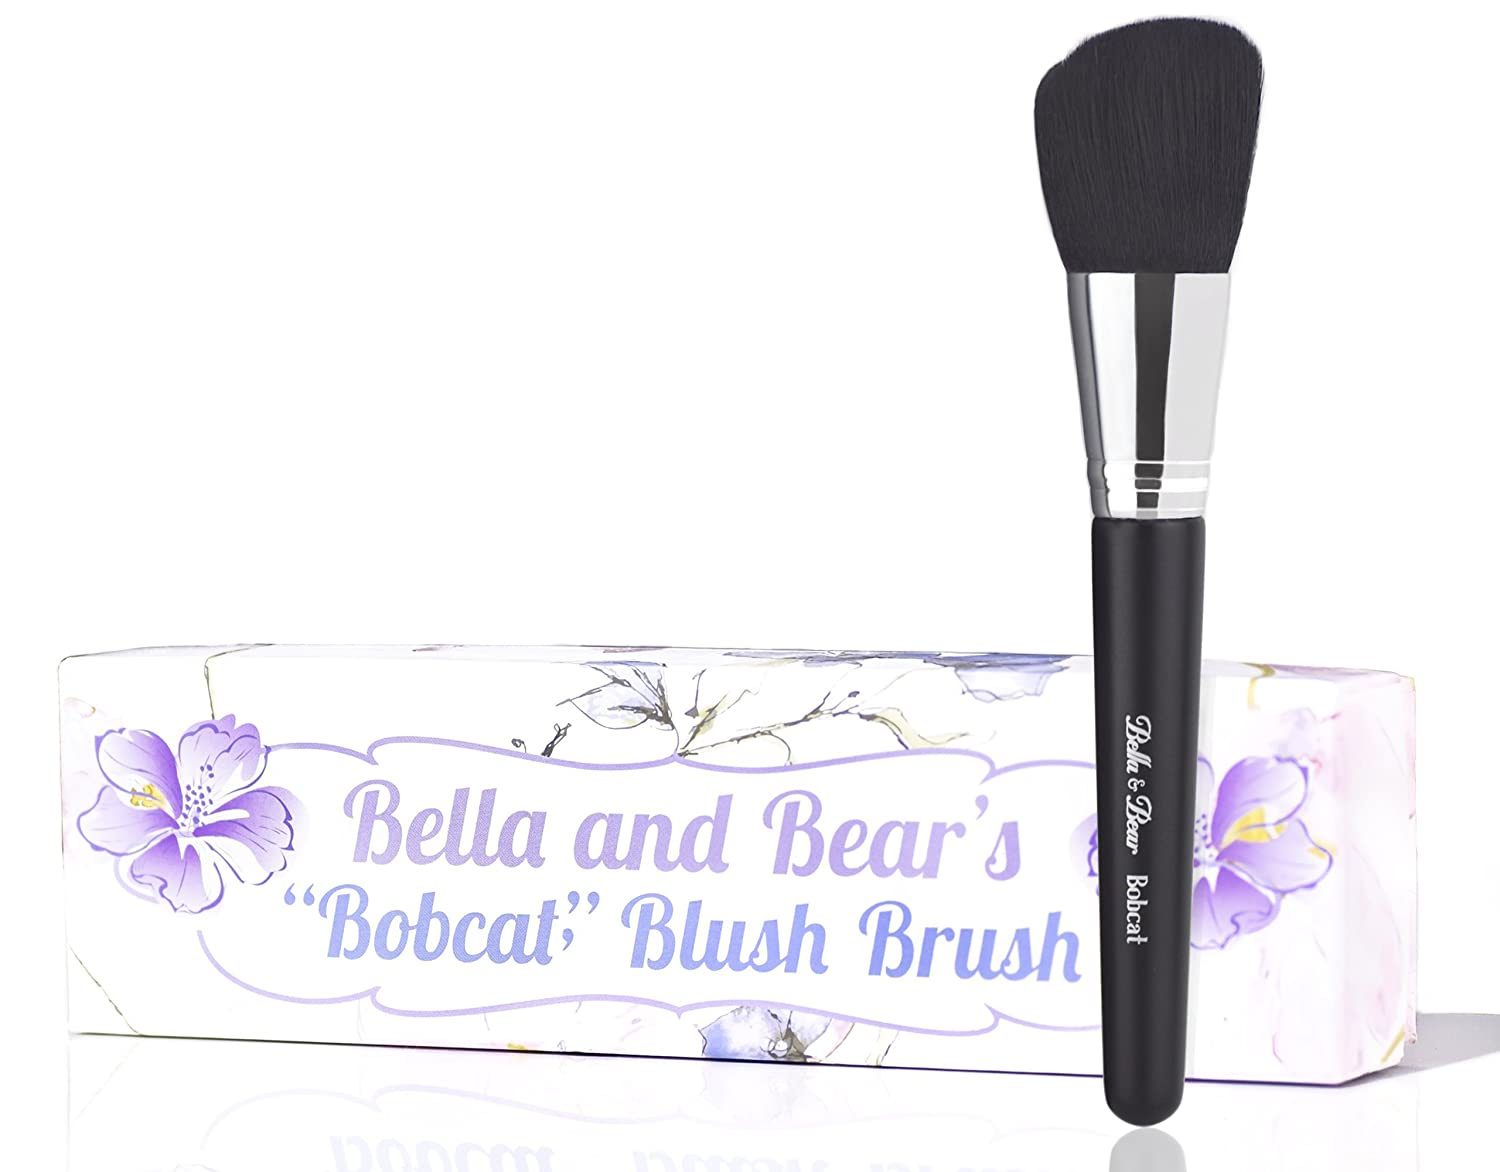 Bella and Bear Blush Brush (Spring) for highlighting bronzing contouring suitable for creams and powders vegan friendly